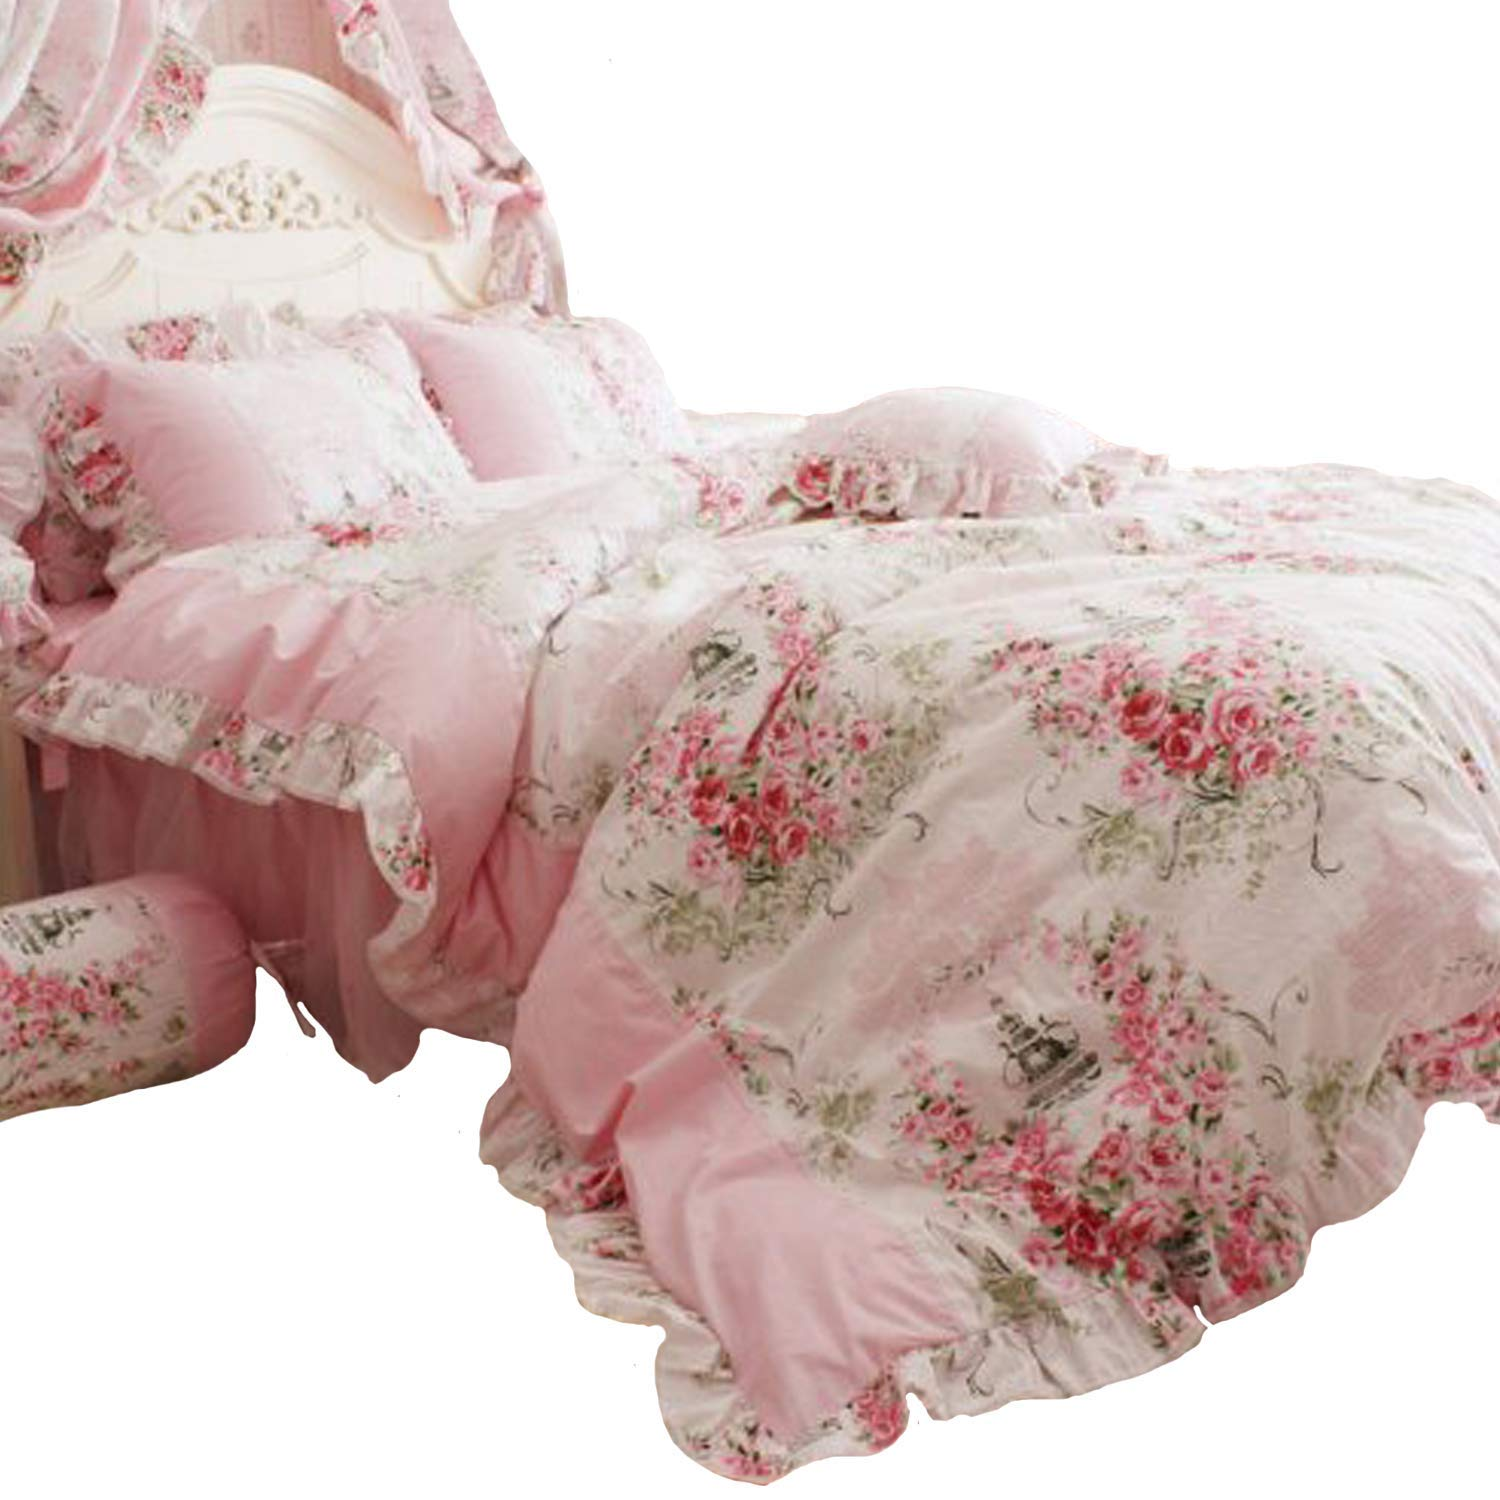 FADFAY 4 Piece Home Textile Floral Print Duvet Cover Bedding Set for Girls, Full Size, Pink Rose